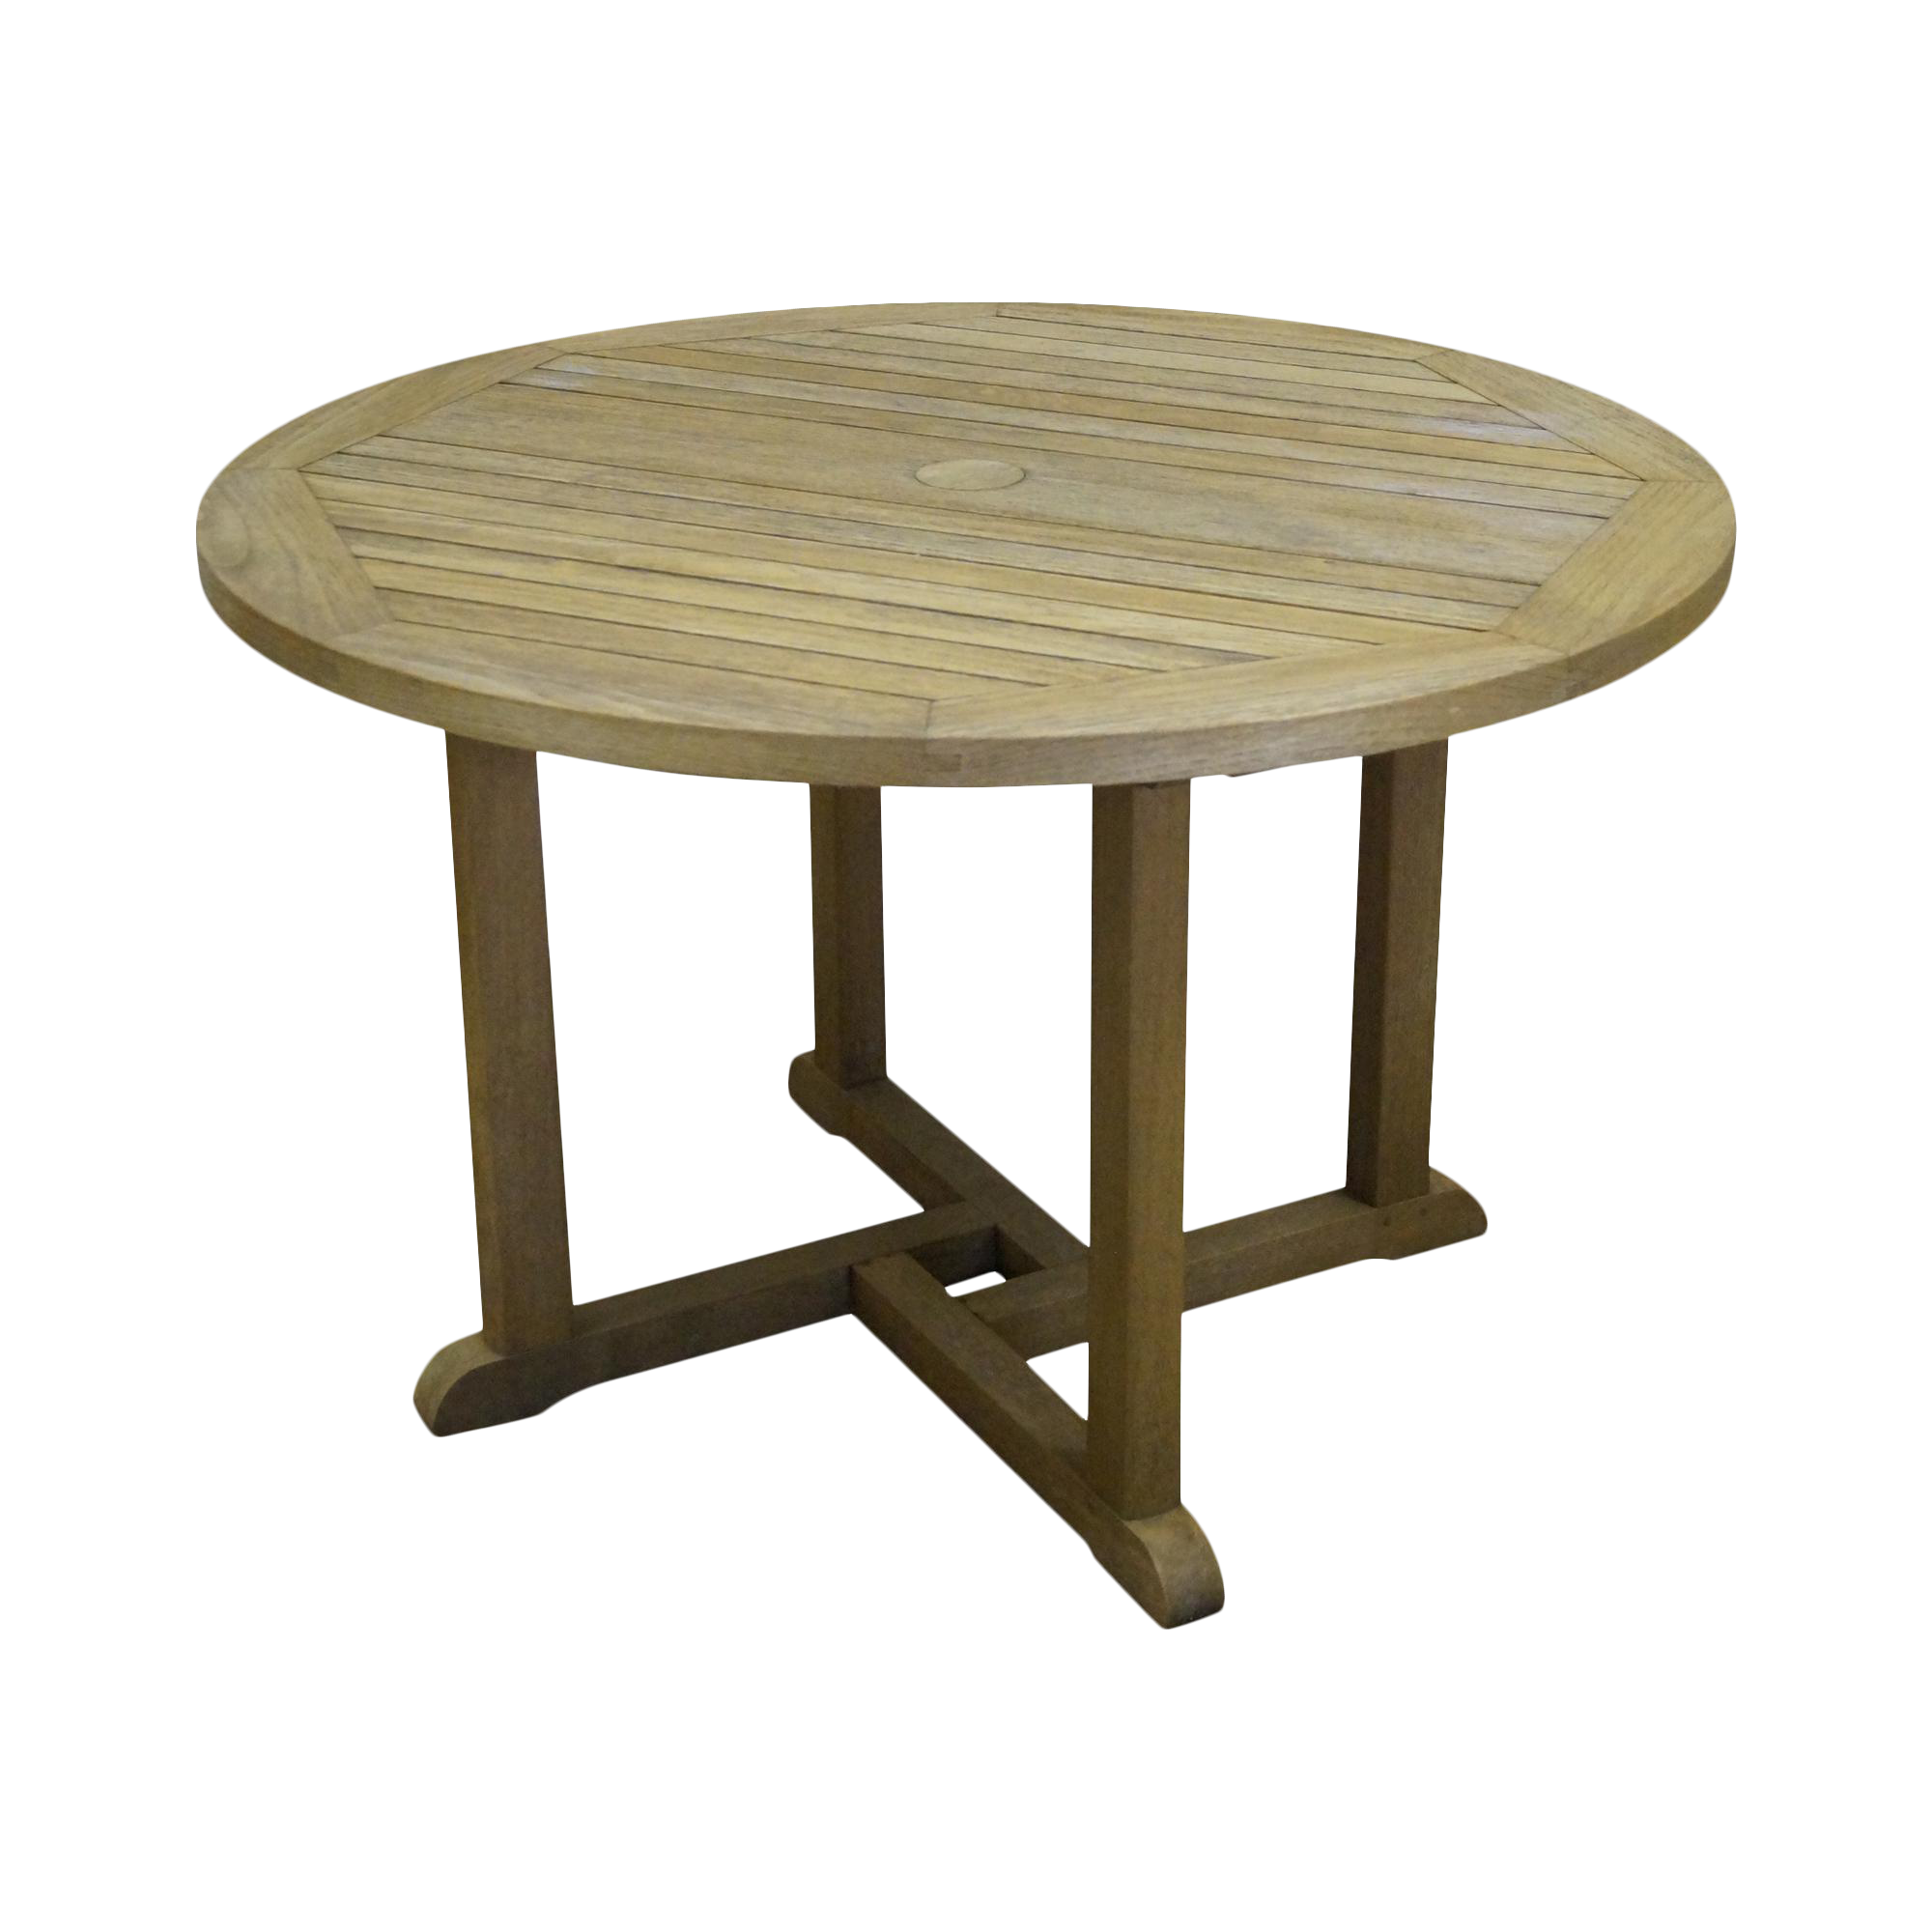 Barlow Tyrie Teak Outdoor Waveney Round Dining Table  : 7ad18fc9 b03d 4ad2 9f42 4a22b39fa322aspectfitampwidth640ampheight640 from www.chairish.com size 640 x 640 jpeg 30kB